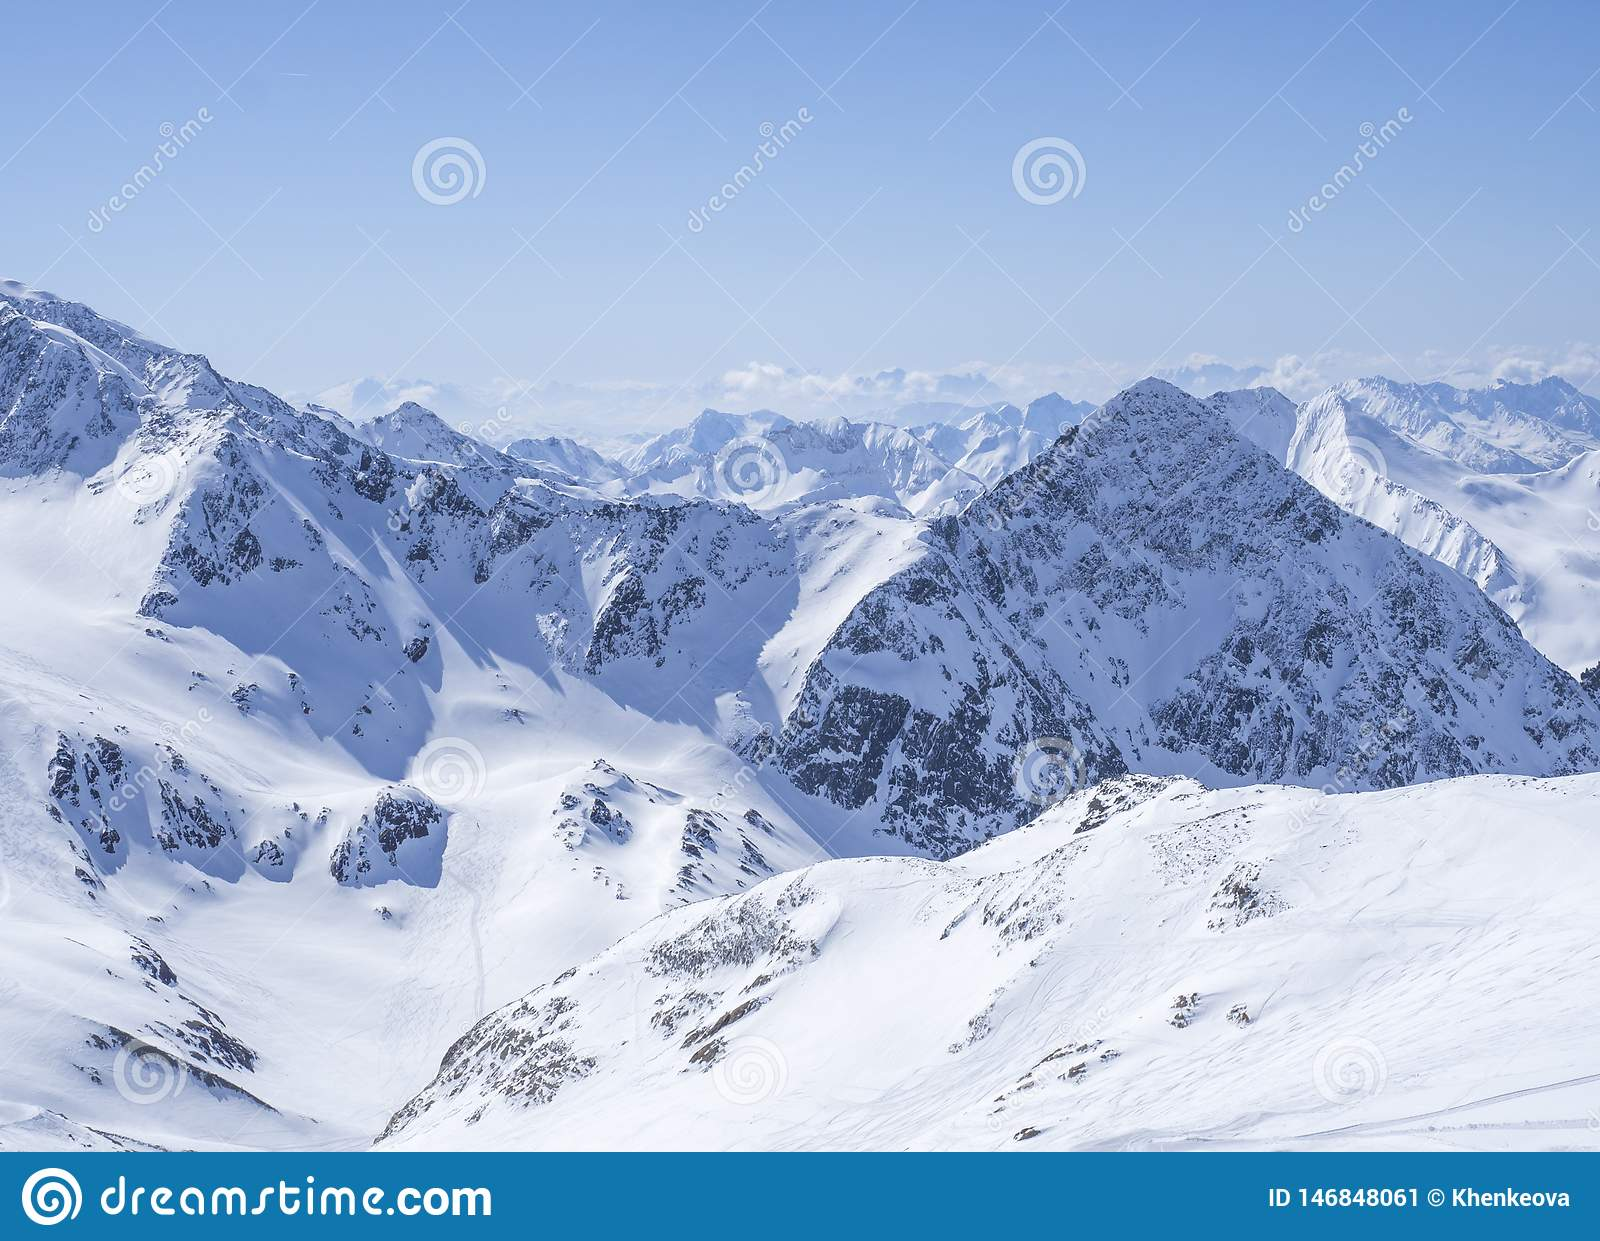 View on winter landscape from the top of Schaufelspitze mountain at Stubai Gletscher ski area with snow covered peaks at